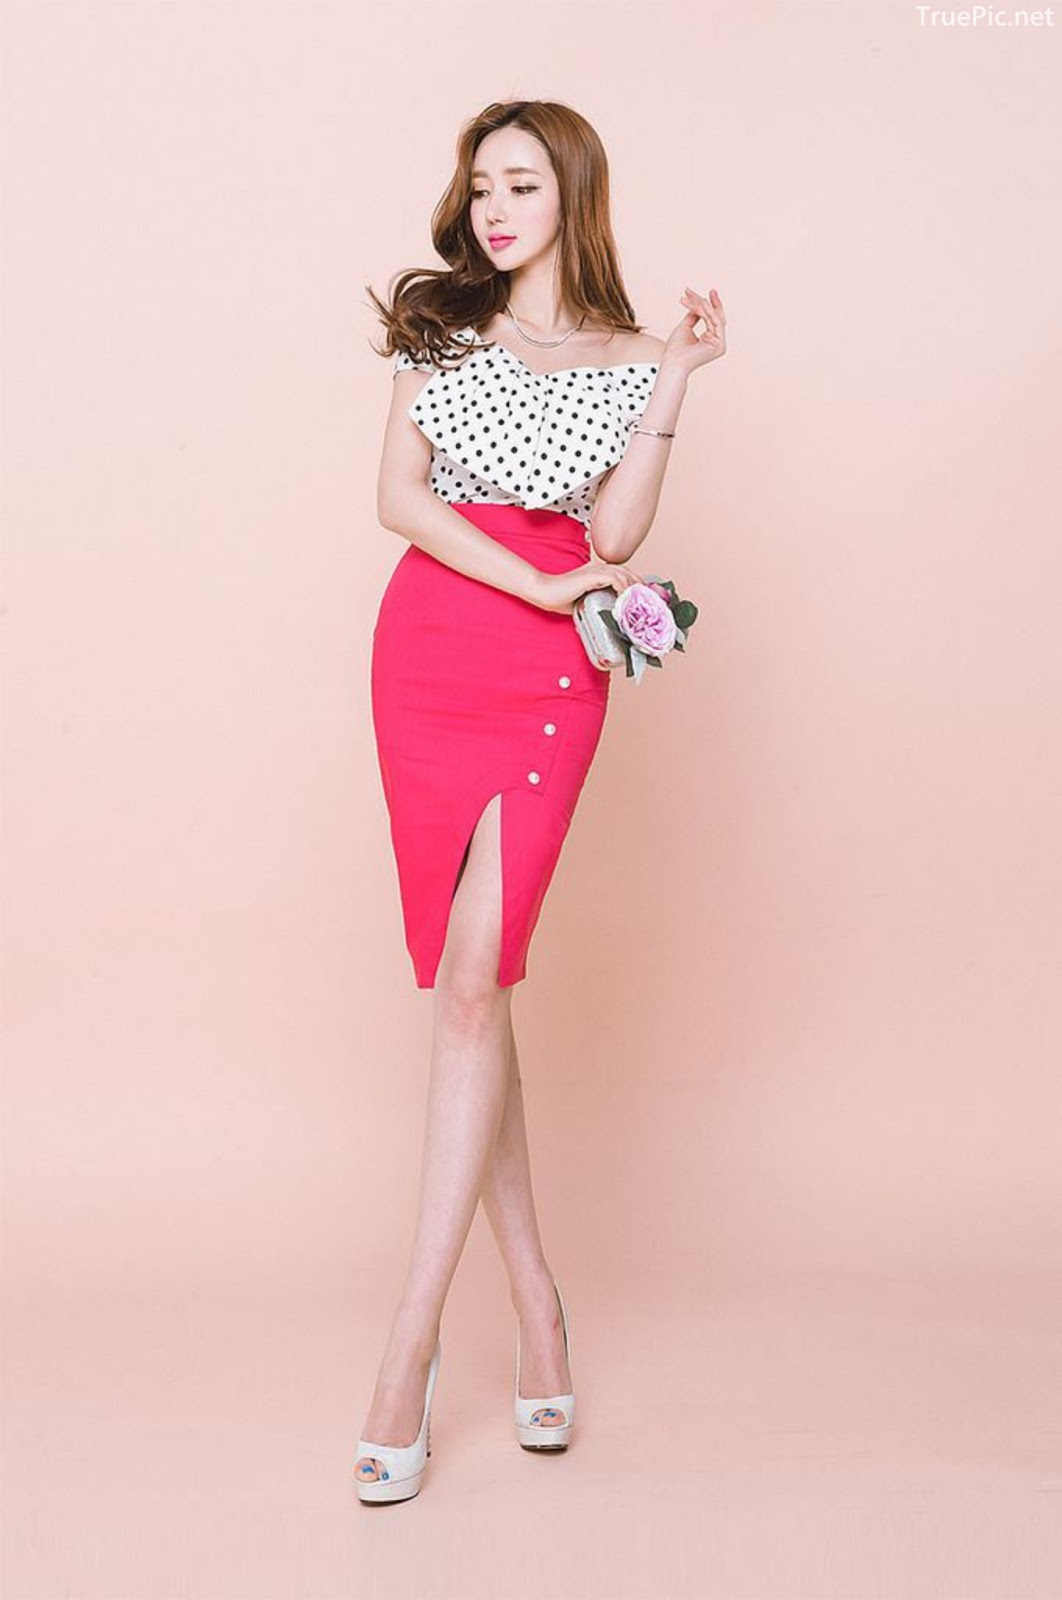 Lee Yeon Jeong - Indoor Photoshoot Collection - Korean fashion model - Part 4 - Picture 6